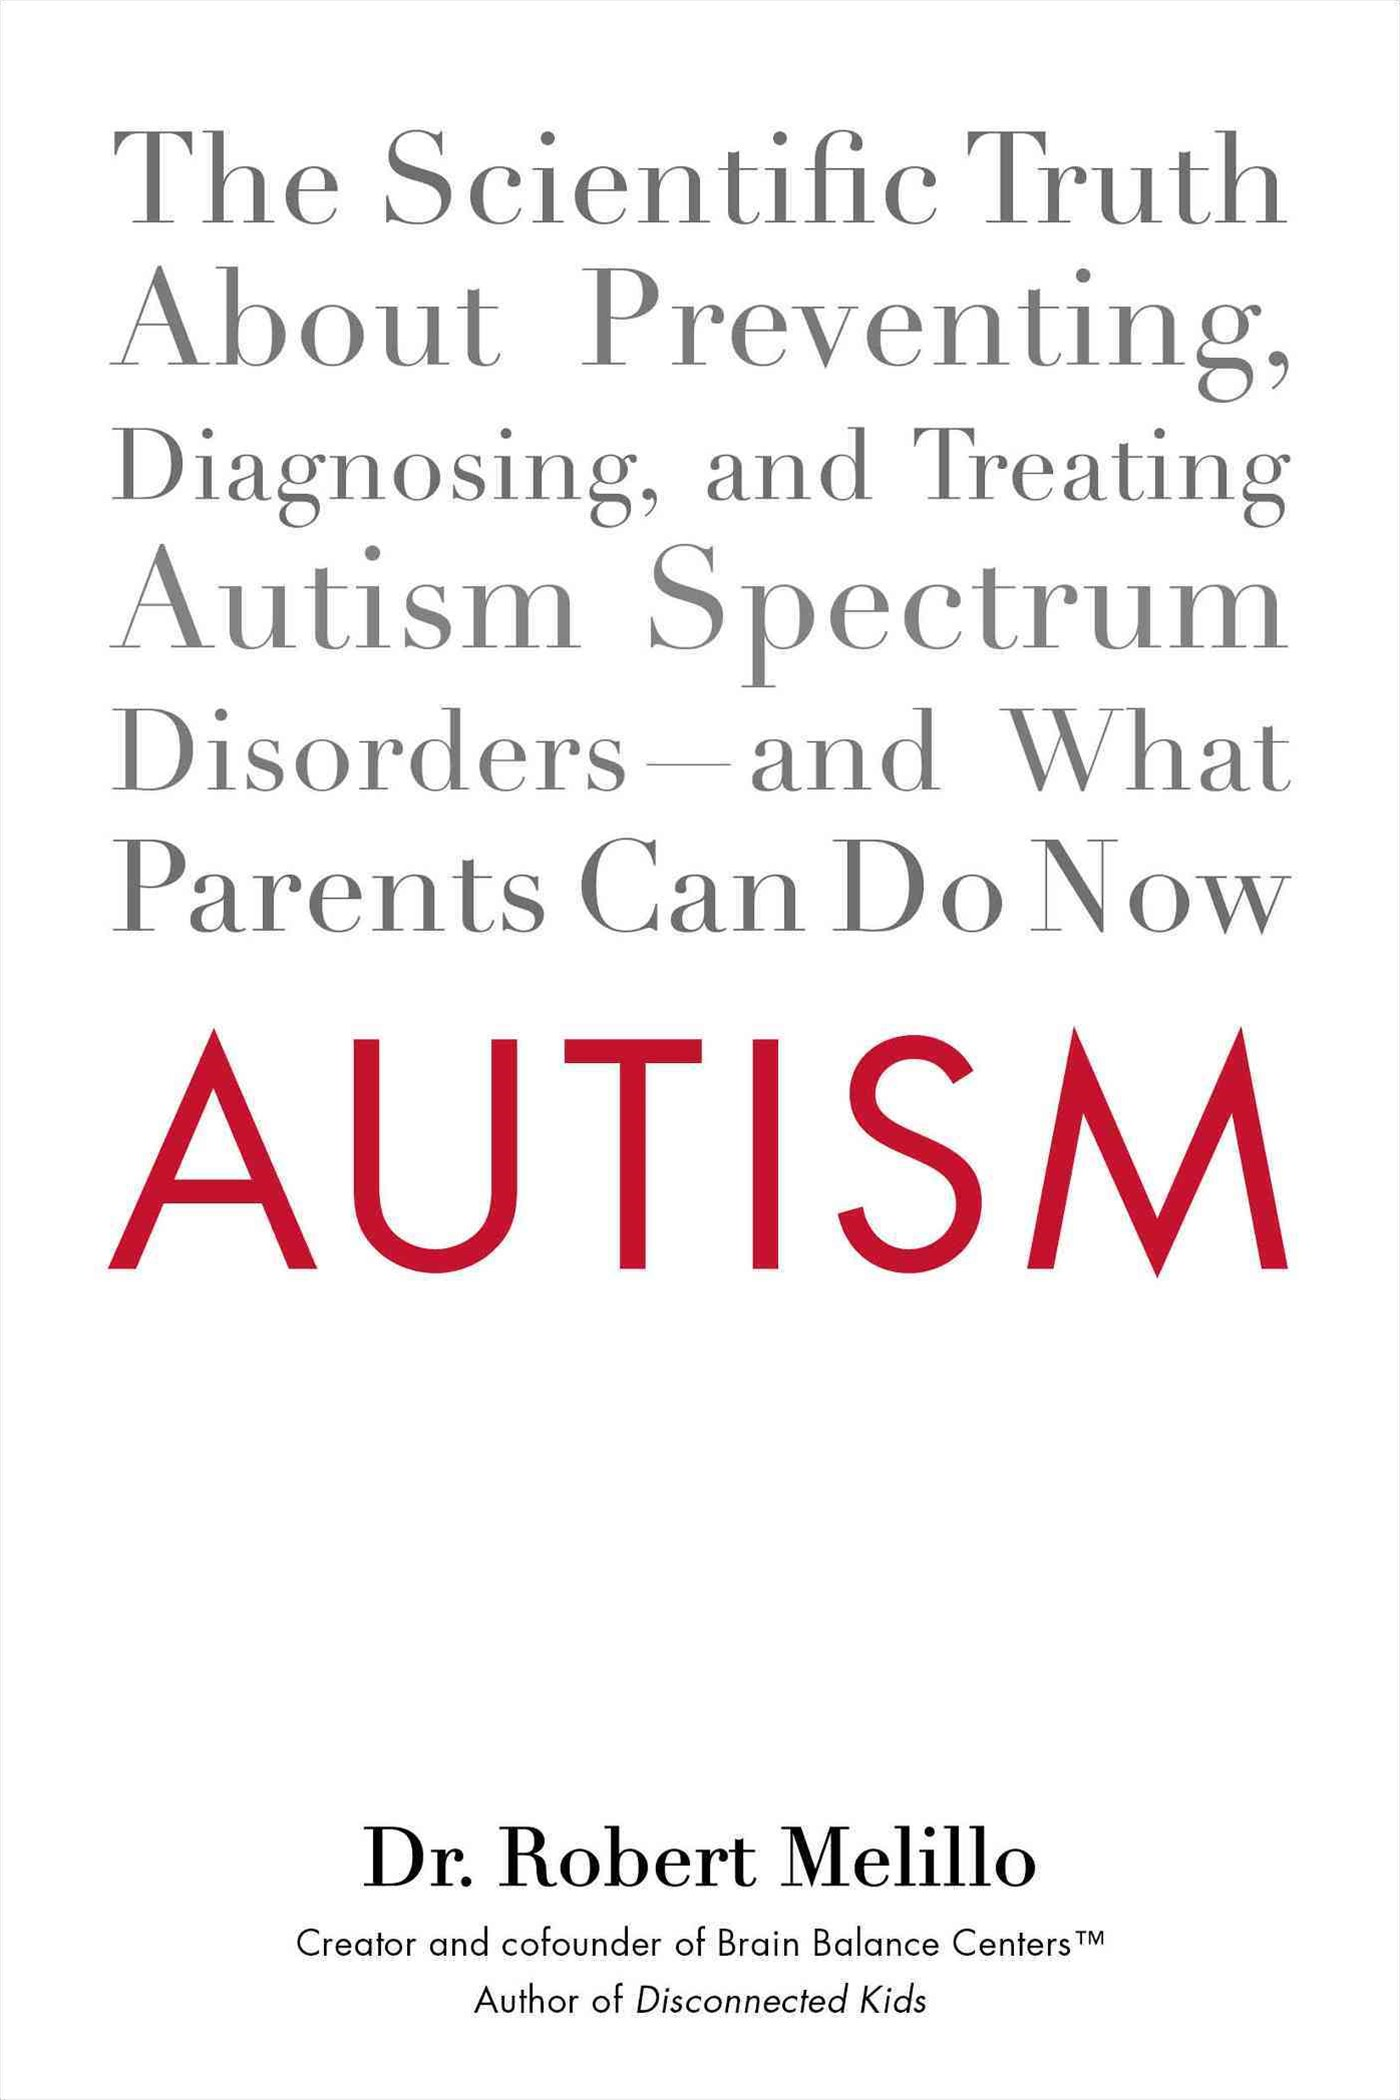 Autism: The Scientific Truth About Preventing, Diagnosing, And Treating Autism Spectrum Disorders--And What Parents Can